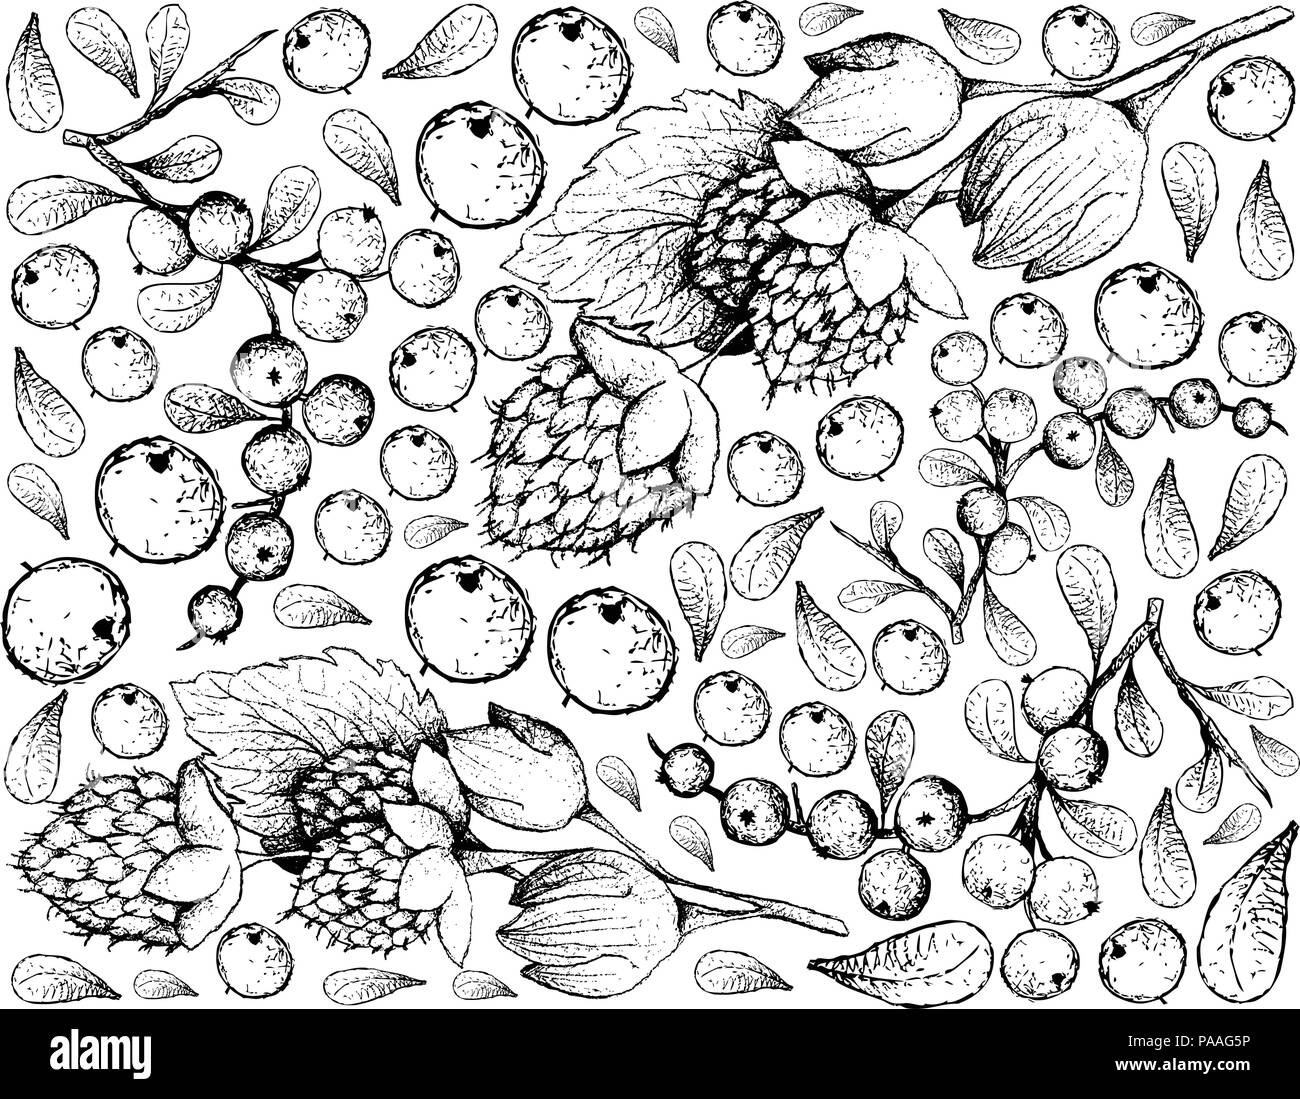 Berry Fruits, Illustration Wallpaper of Hand Drawn Sketch Delicious Fresh Golden Himalayan Raspberries or Rubus Ellipticus and Flueggea Virosa Fruits  - Stock Vector